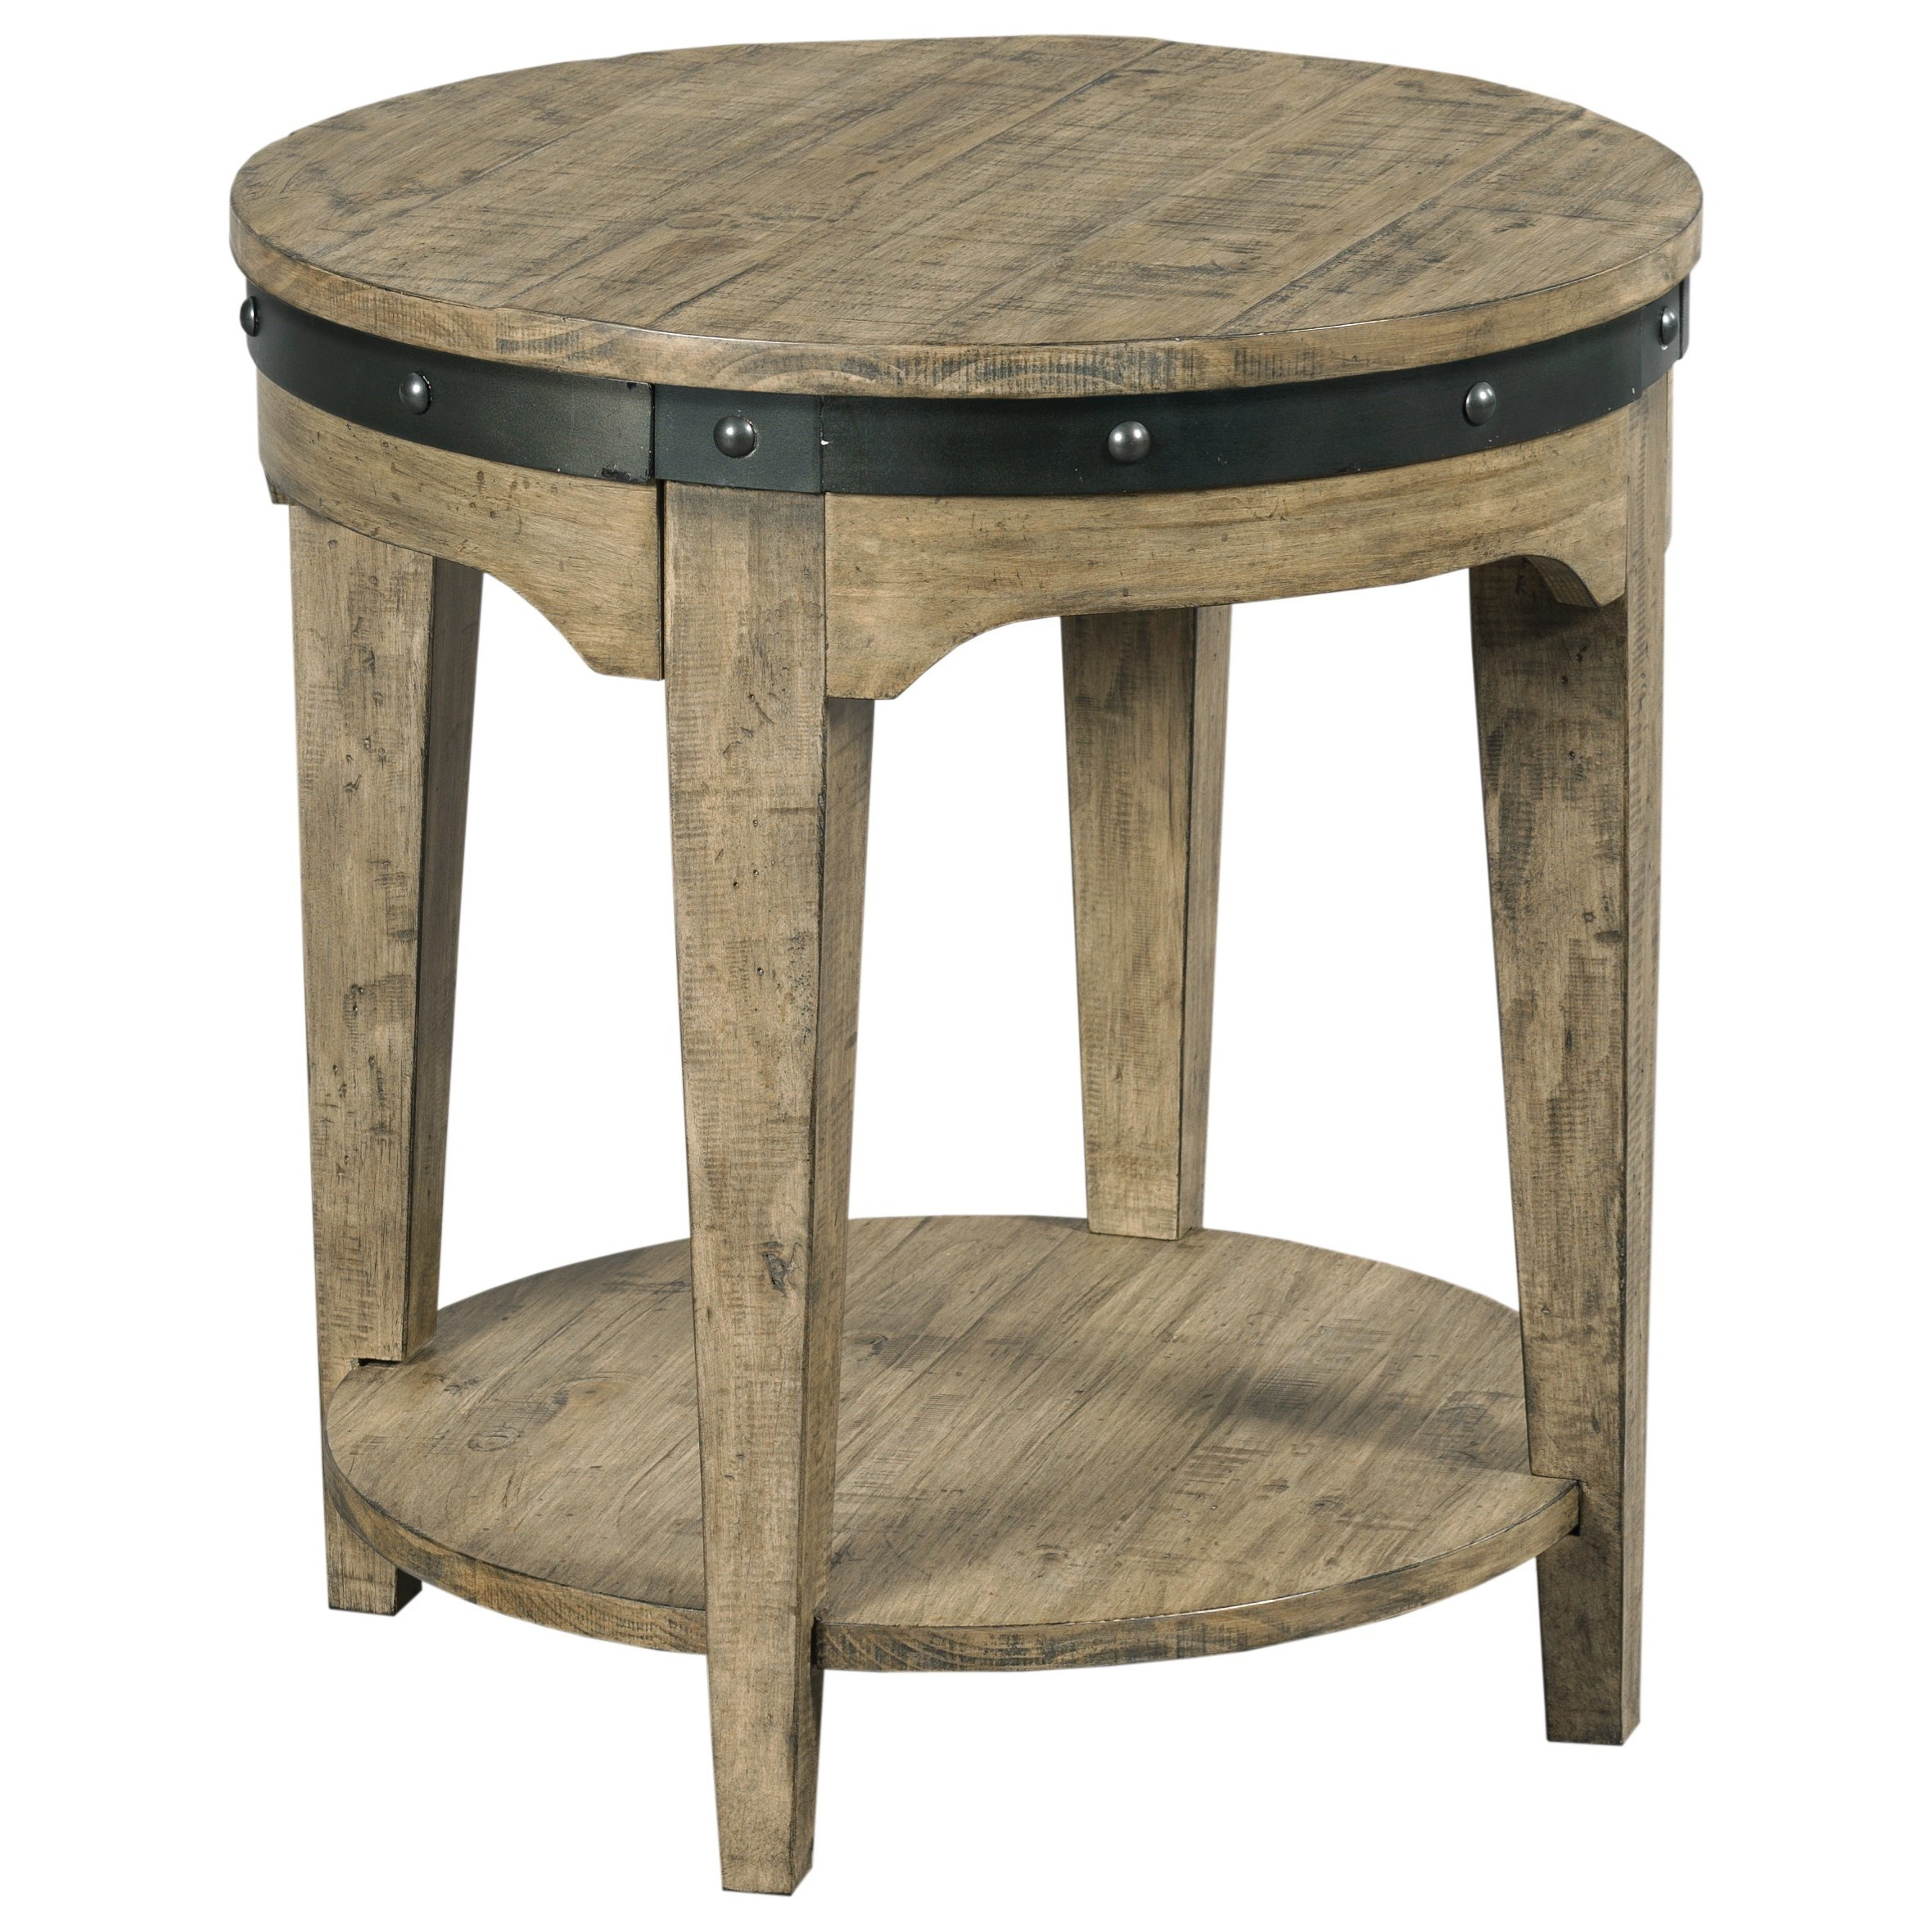 kincaid furniture plank road artisans round solid wood end table products color tables coffee dog cocktail calgary modern side ikea glass desk top replacement tool boxes large